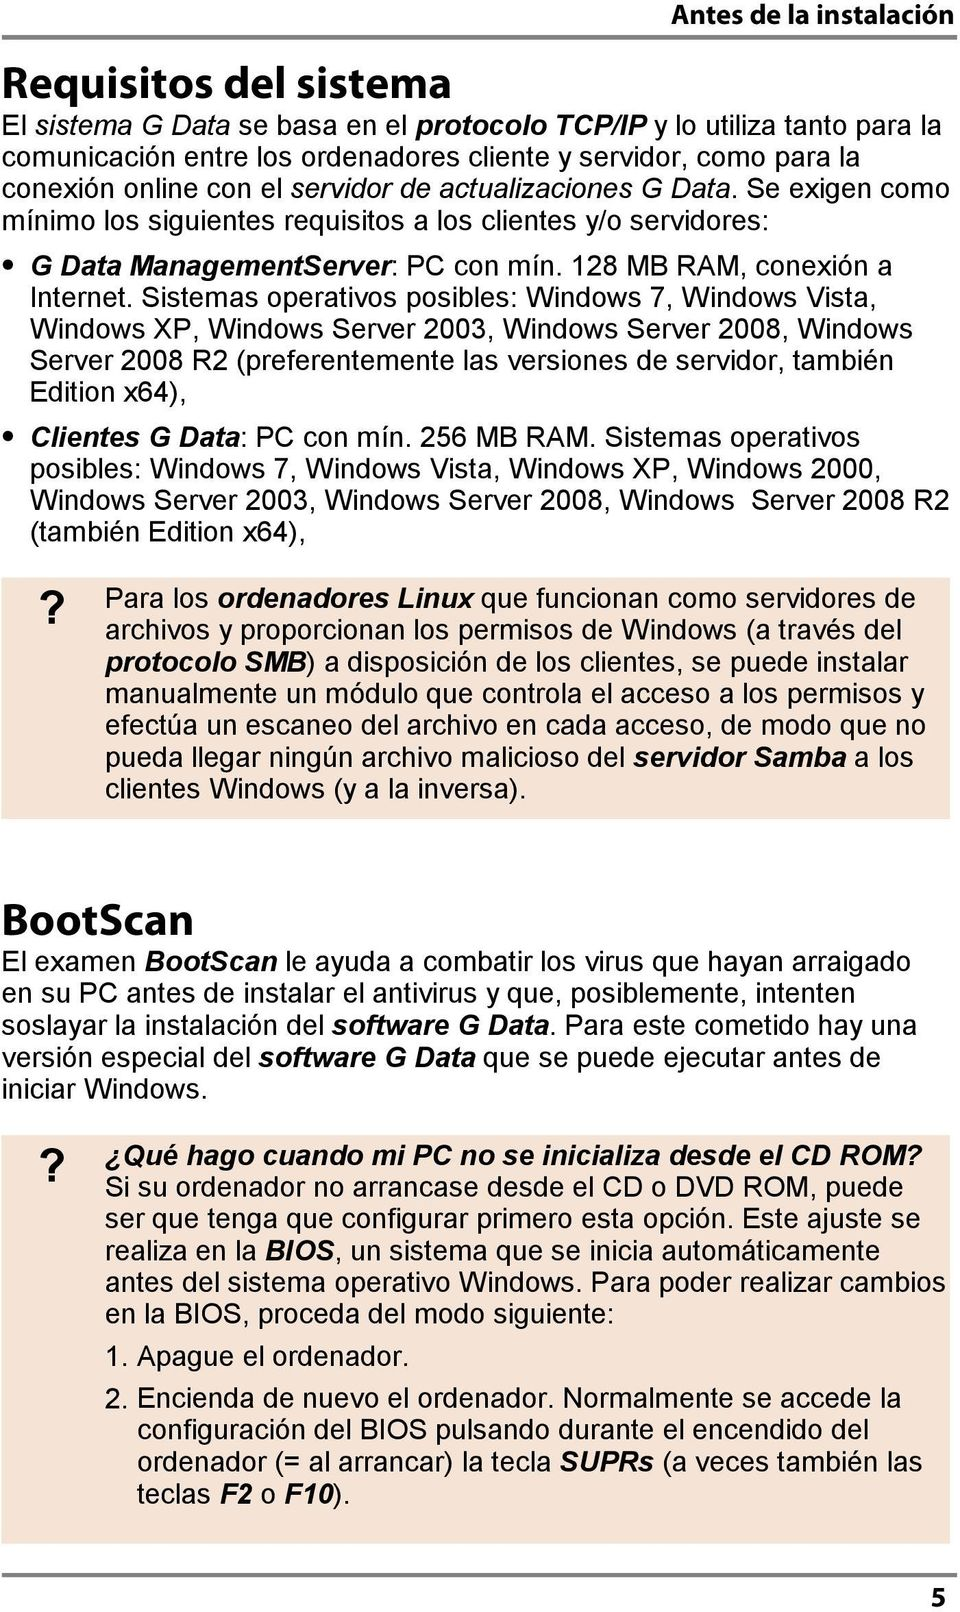 Sistemas operativos posibles: Windows 7, Windows Vista, Windows XP, Windows Server 2003, Windows Server 2008, Windows Server 2008 R2 (preferentemente las versiones de servidor, también Edition x64),